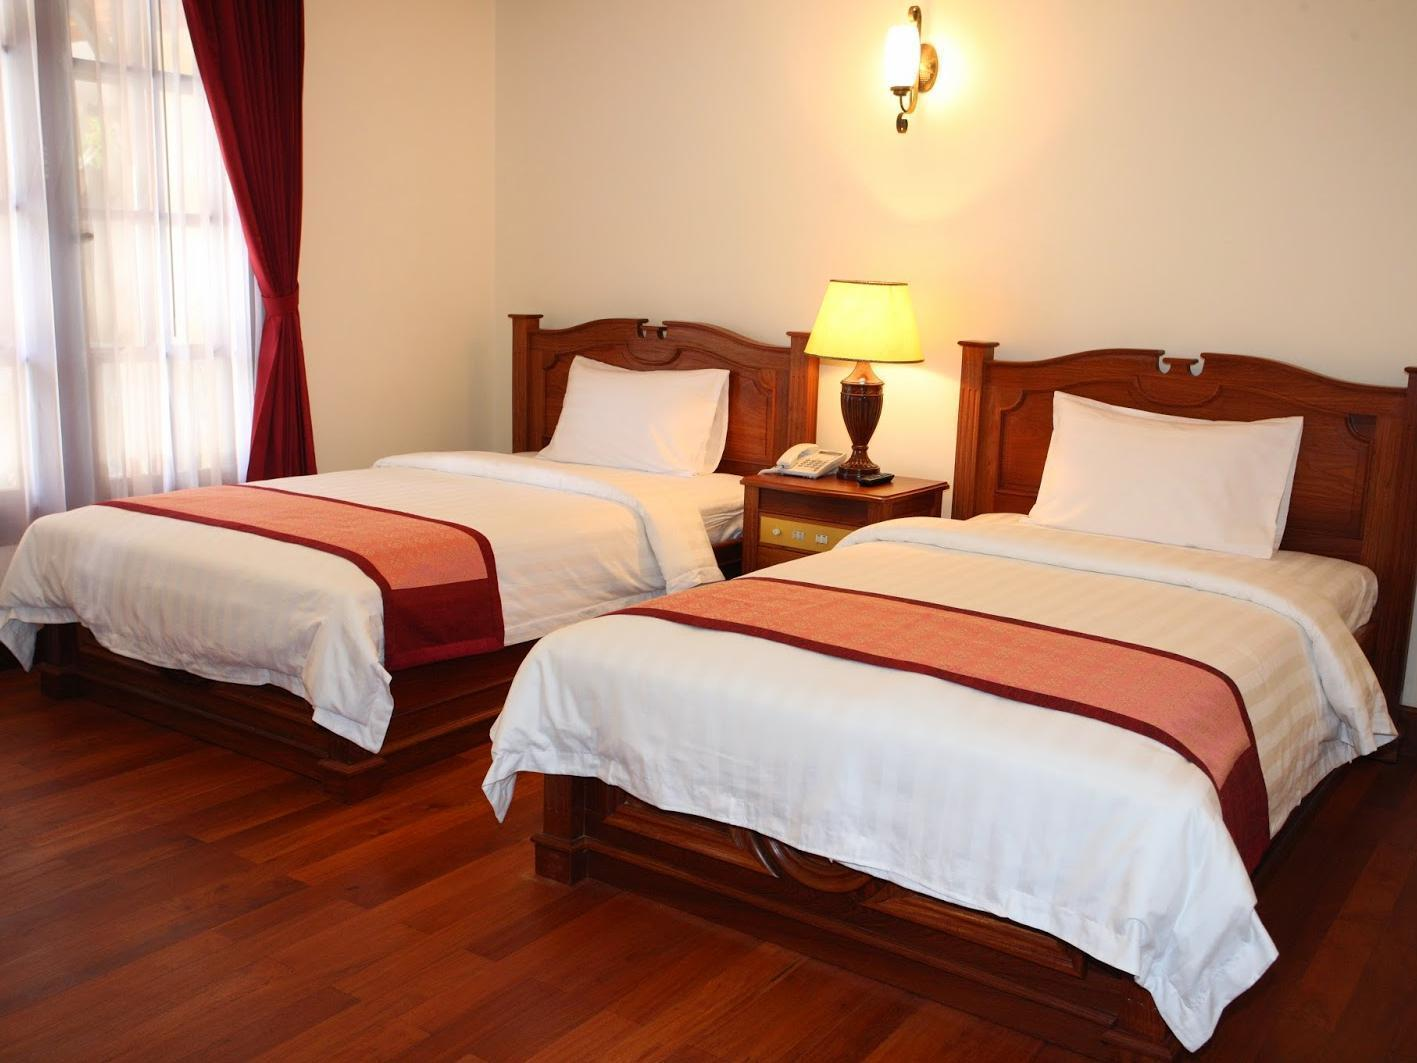 Divu guļamistabu Suite rezidence (Two- Bed Rooms Residence Suite)